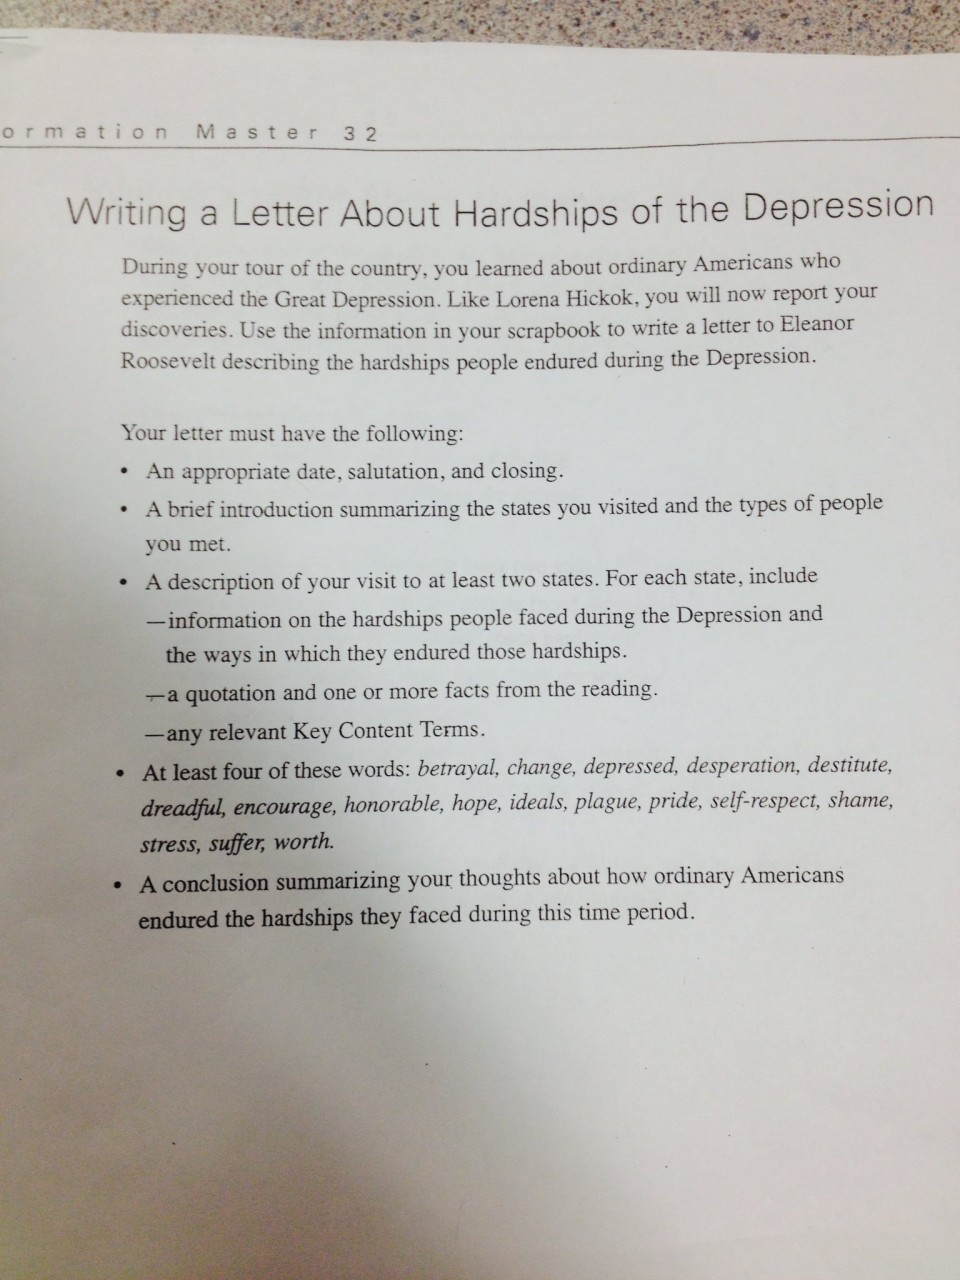 012 Letter Conclusion Of The Great Depression Essay Amazing 960